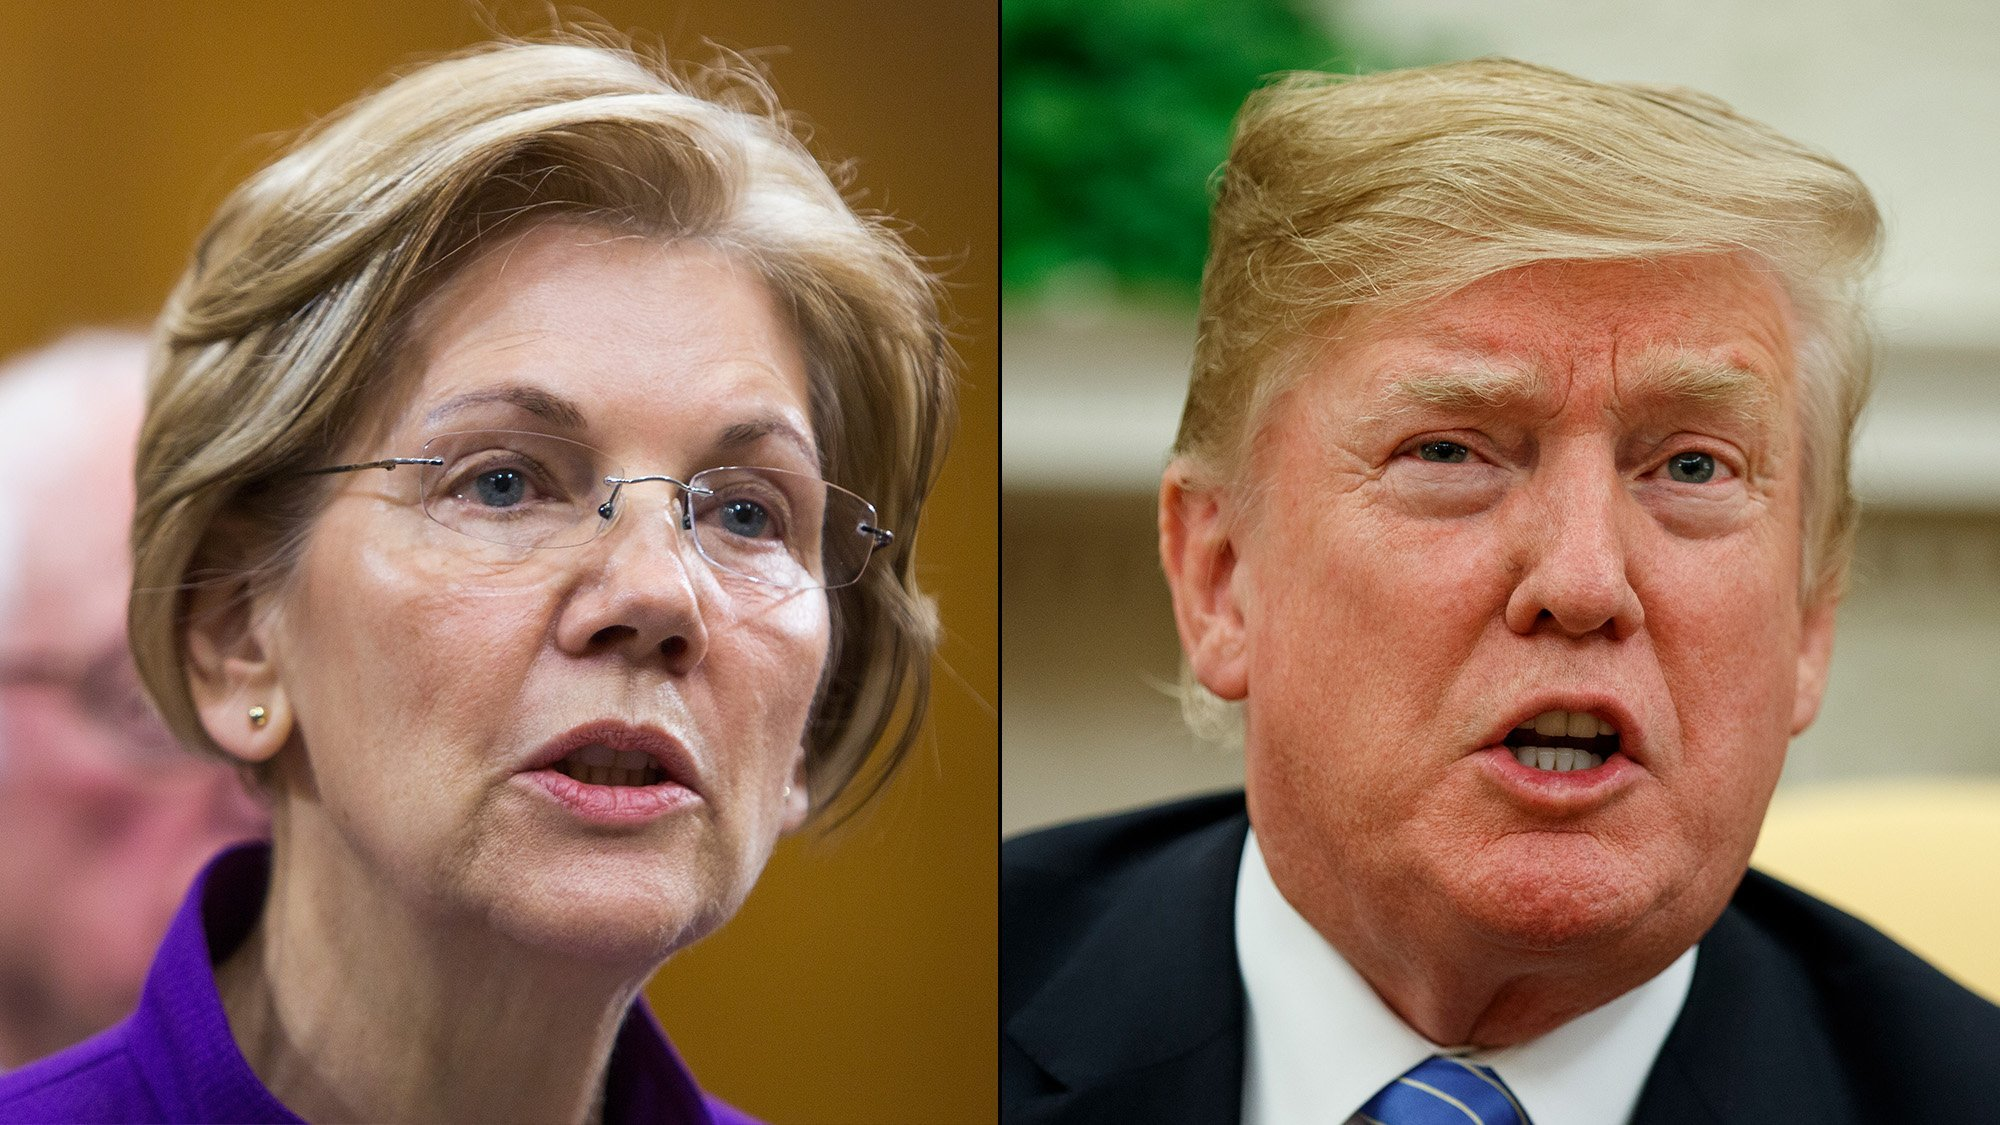 Warren and Trump agree on at least one thing — hearing aids